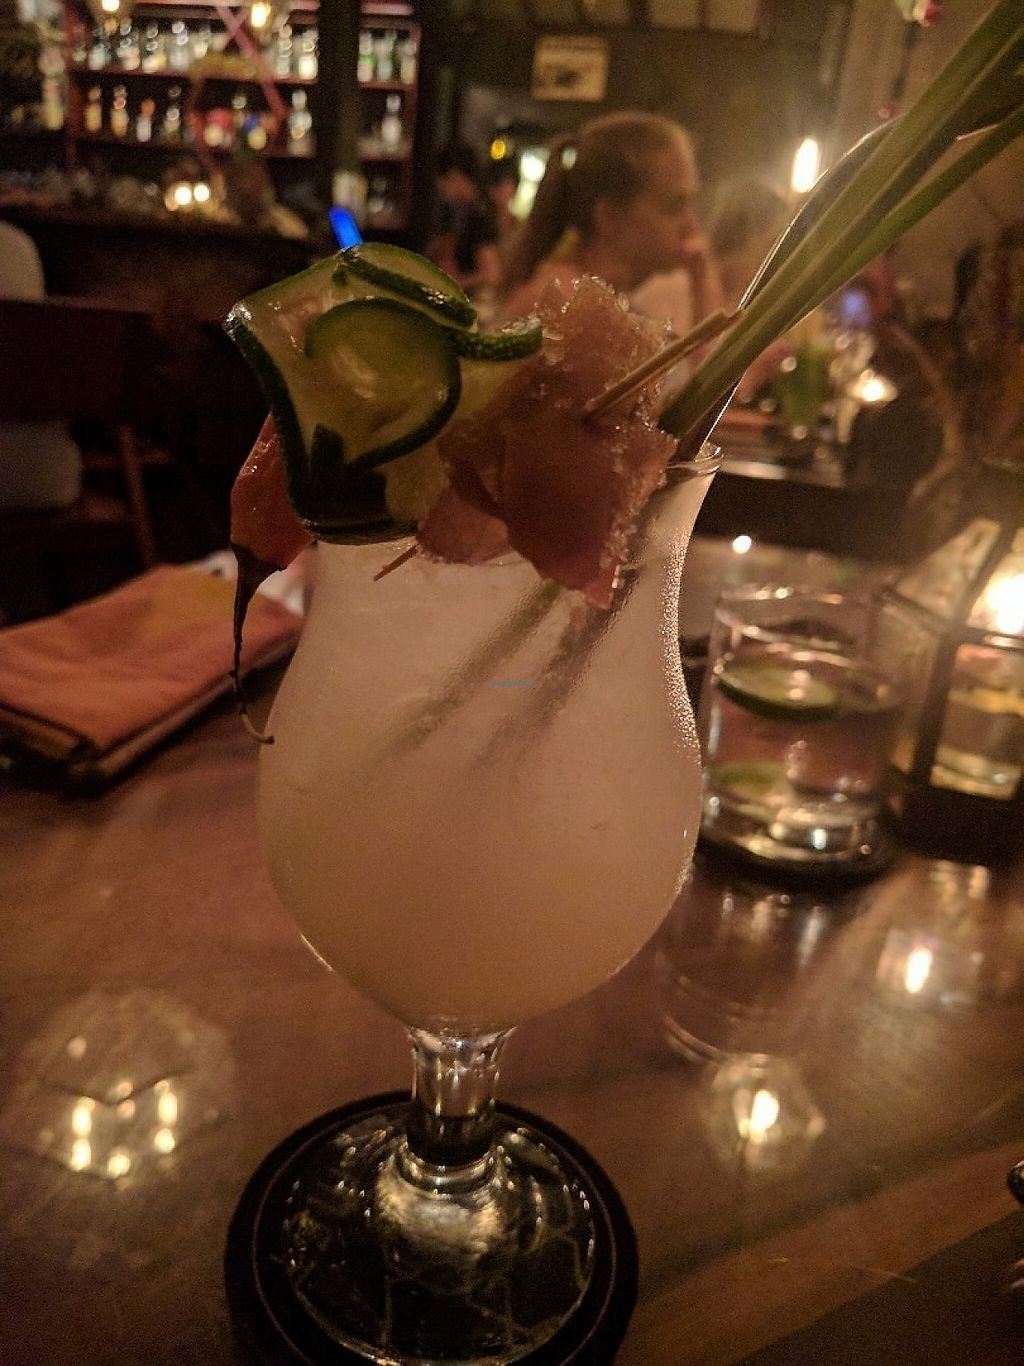 """Photo of Kismet Cafe and Boutique  by <a href=""""/members/profile/wildeyedgirl"""">wildeyedgirl</a> <br/>Lemongrass, chilli and ginger cocktail  <br/> May 15, 2017  - <a href='/contact/abuse/image/55831/258925'>Report</a>"""